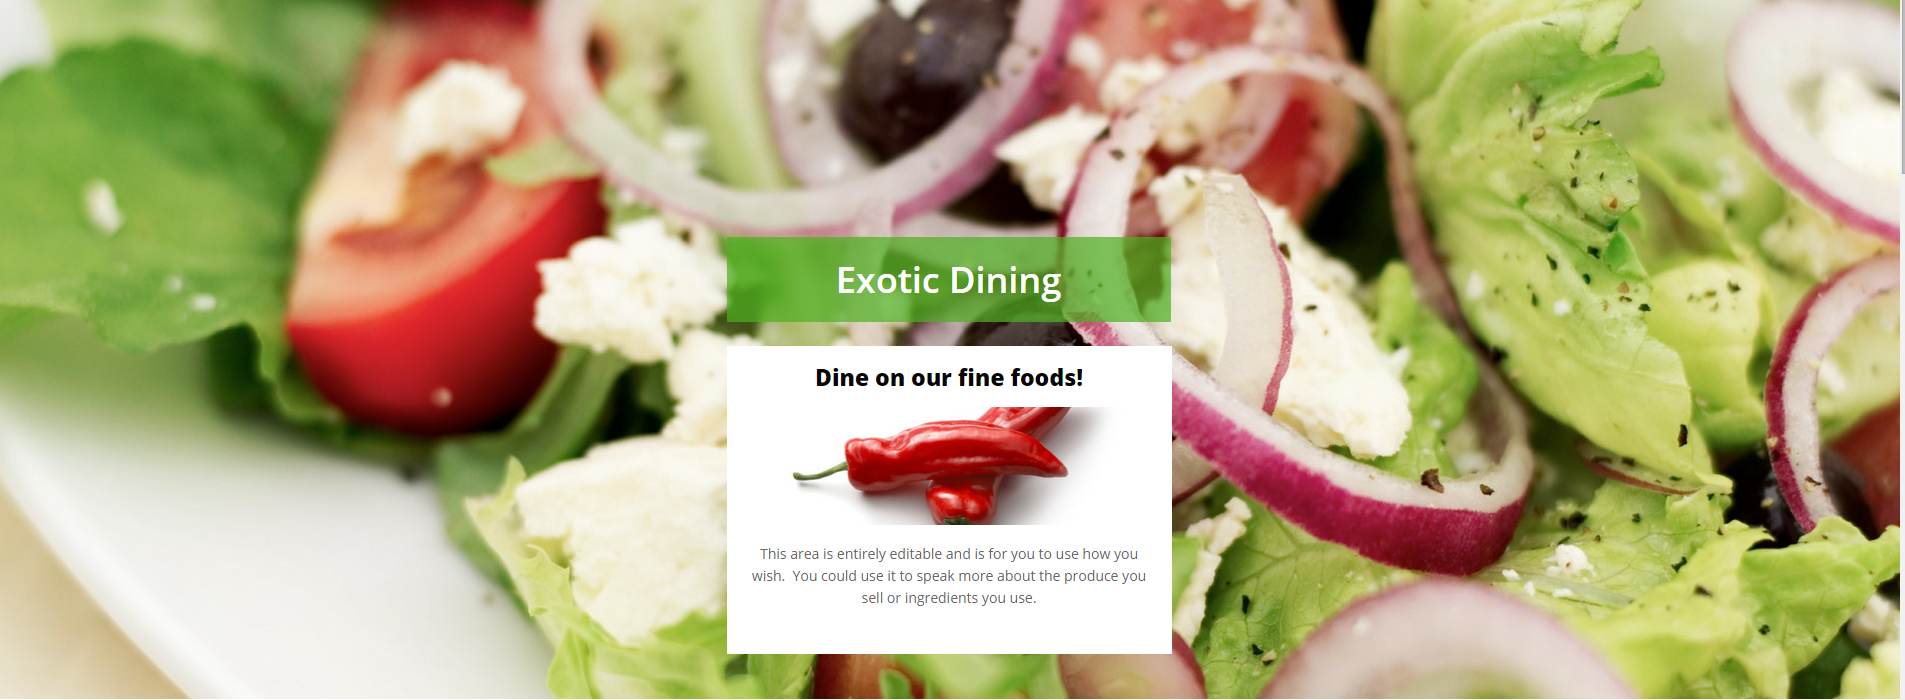 Excotic-Dining-Template